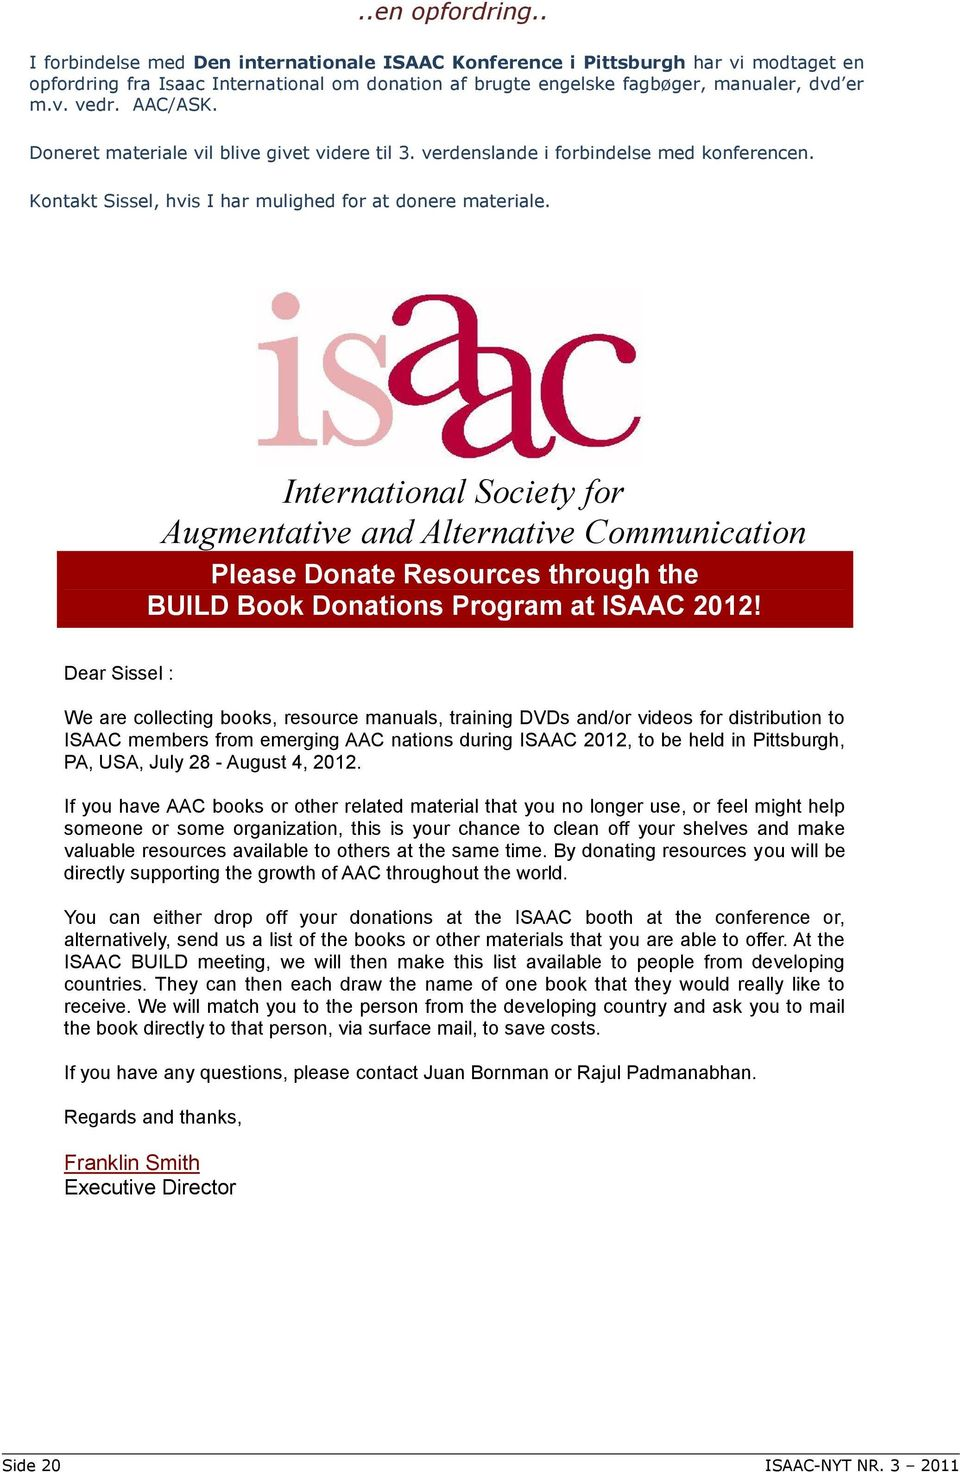 International Society for Augmentative and Alternative Communication Please Donate Resources through the BUILD Book Donations Program at ISAAC 2012!